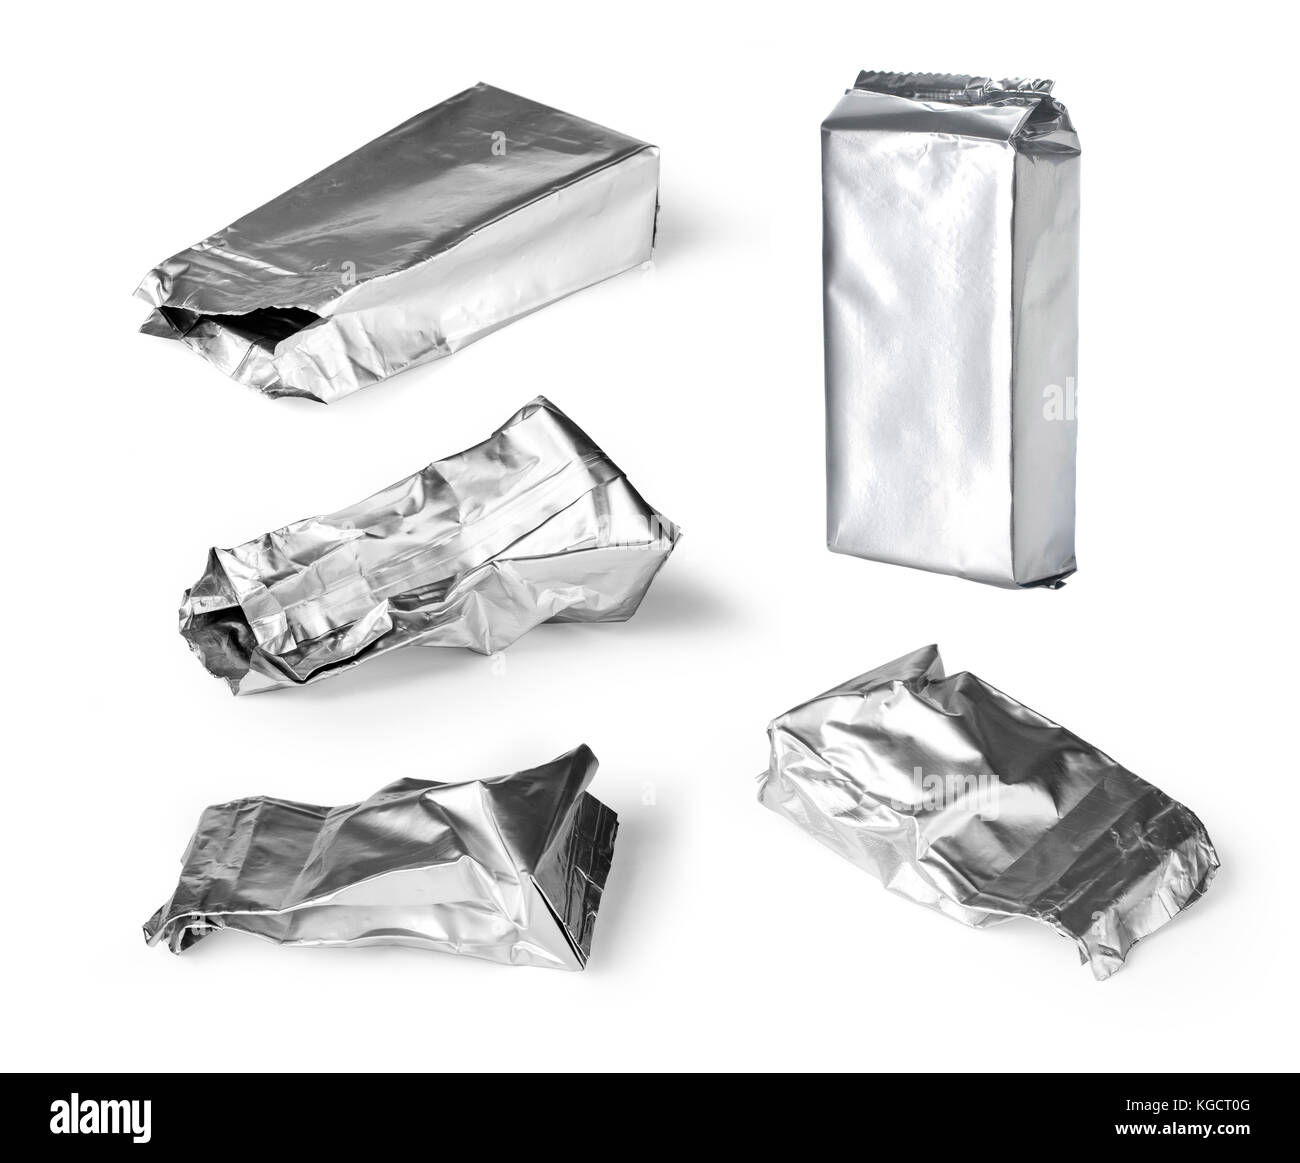 crumpled packaging isolated on white background - Stock Image